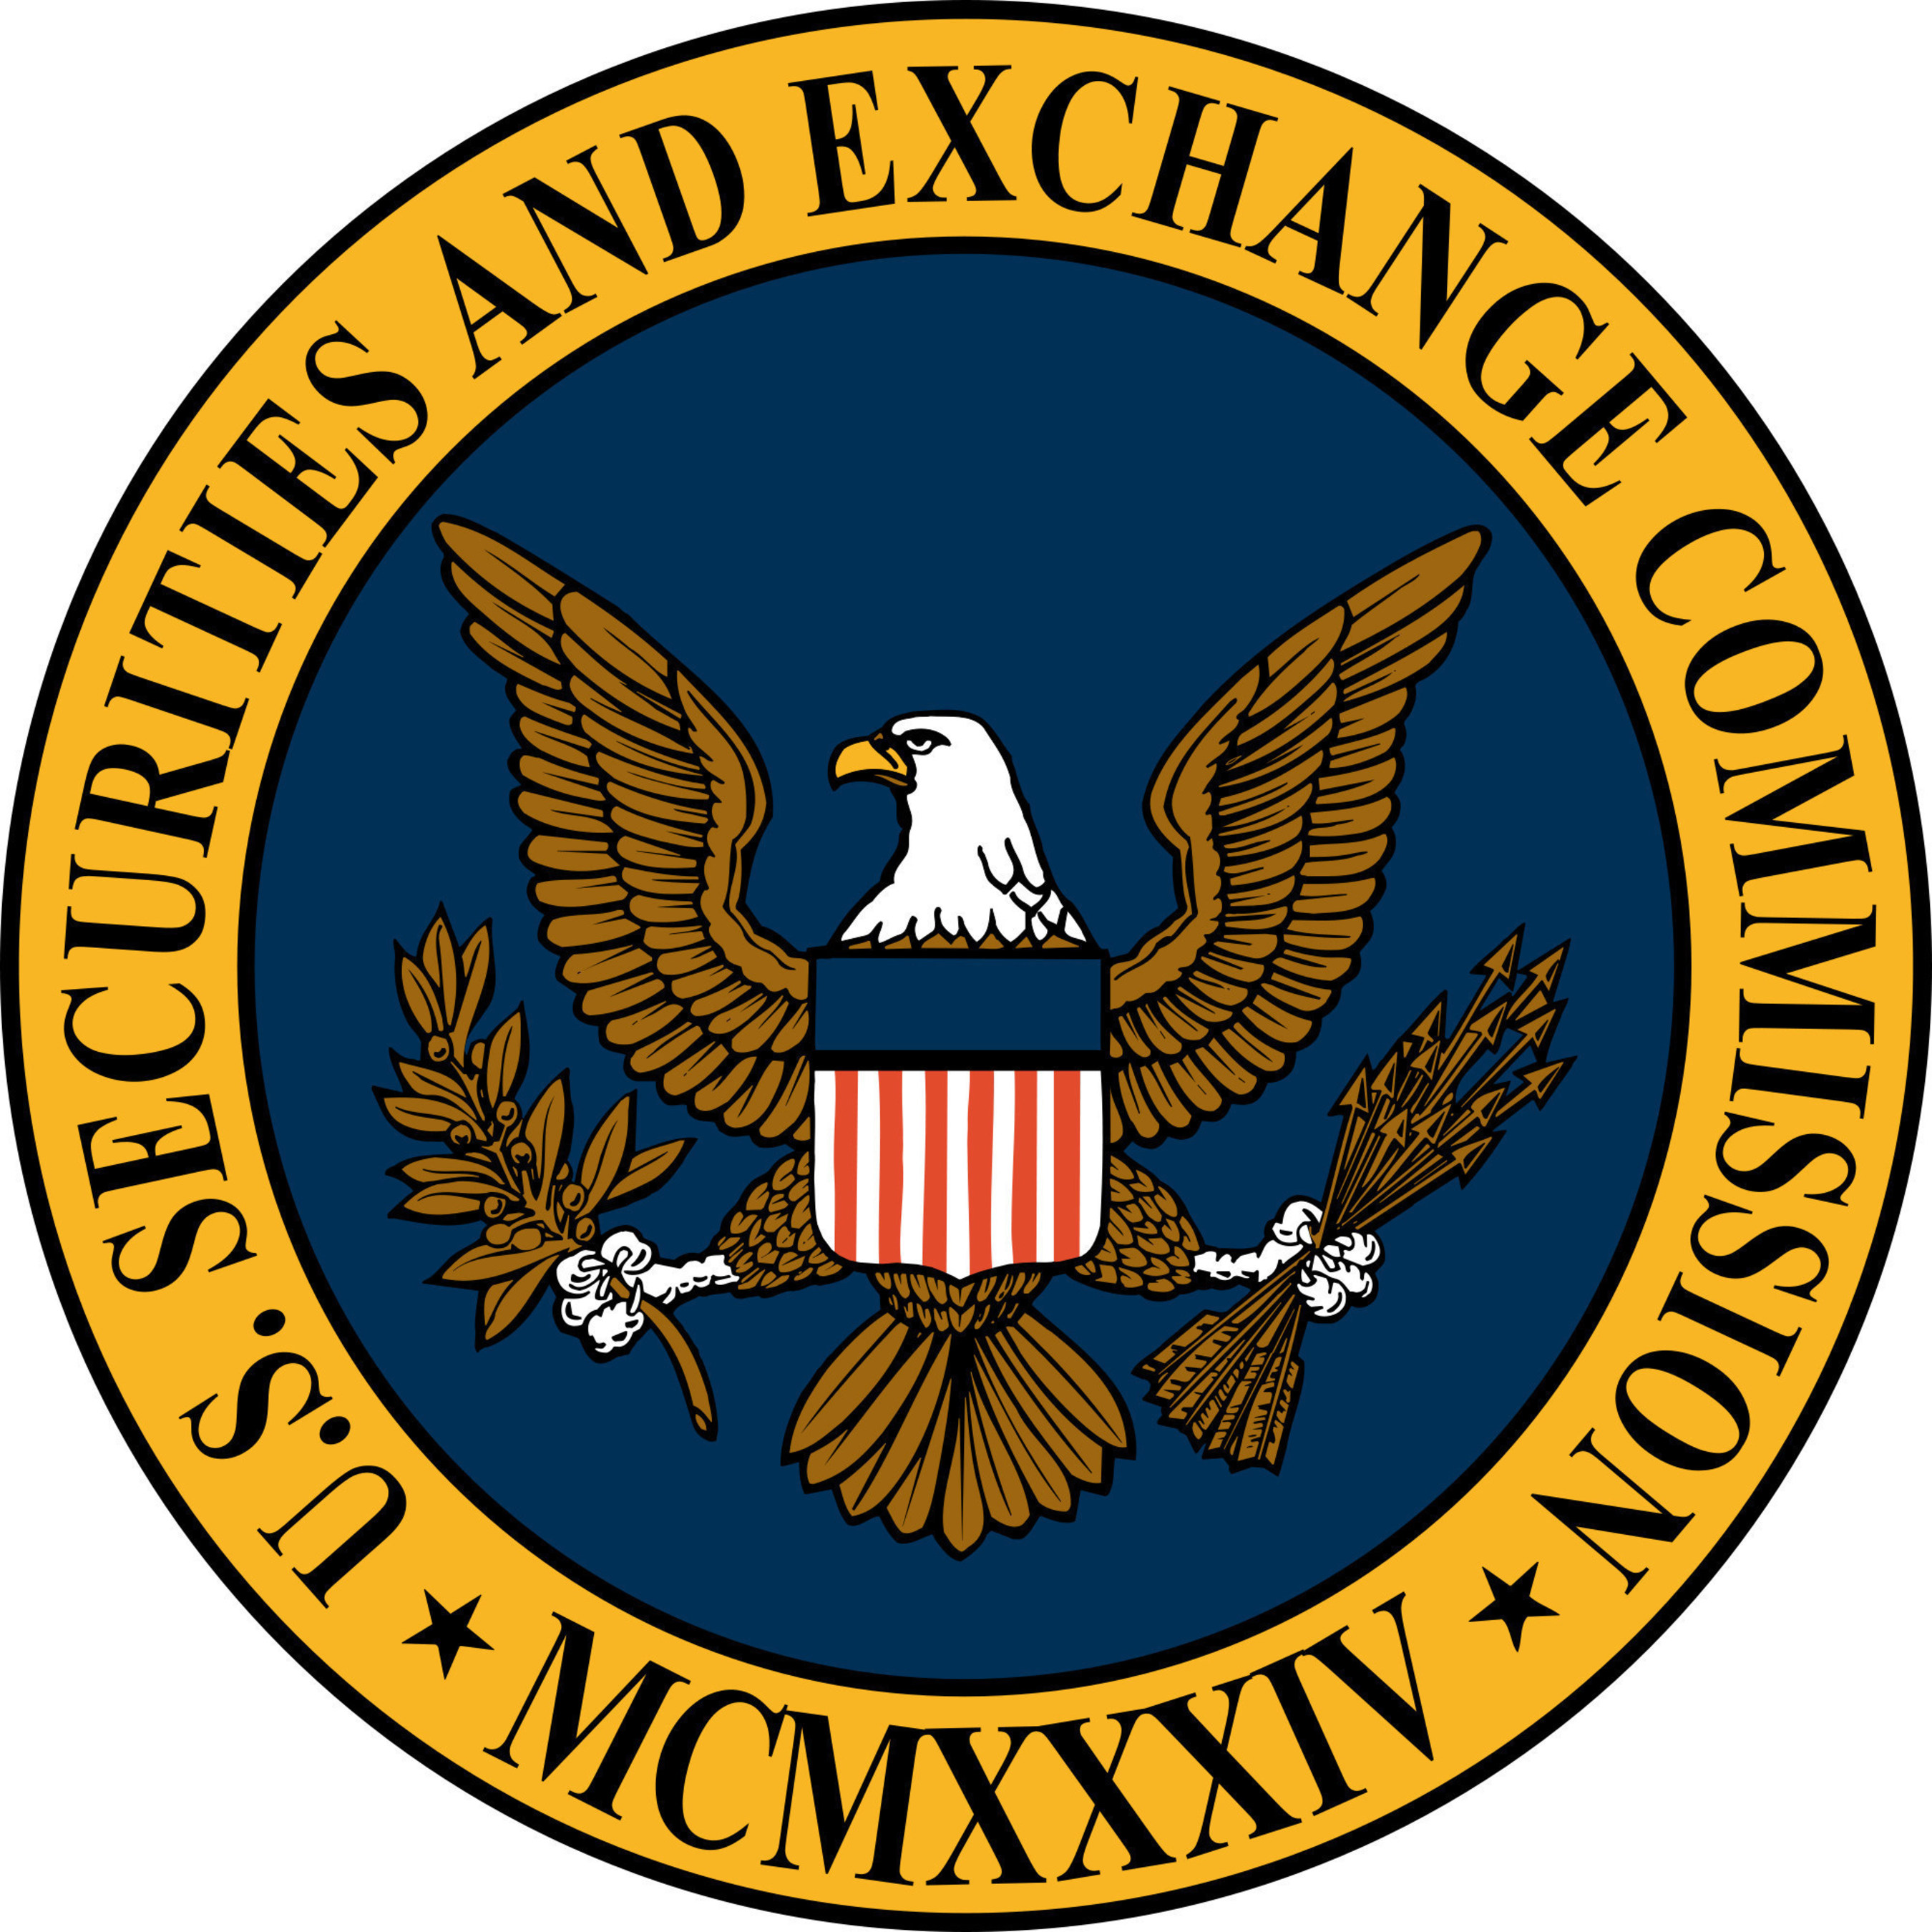 U.S. Securities and Exchange Commission (PRNewsFoto/RCB Fund Services LLC)